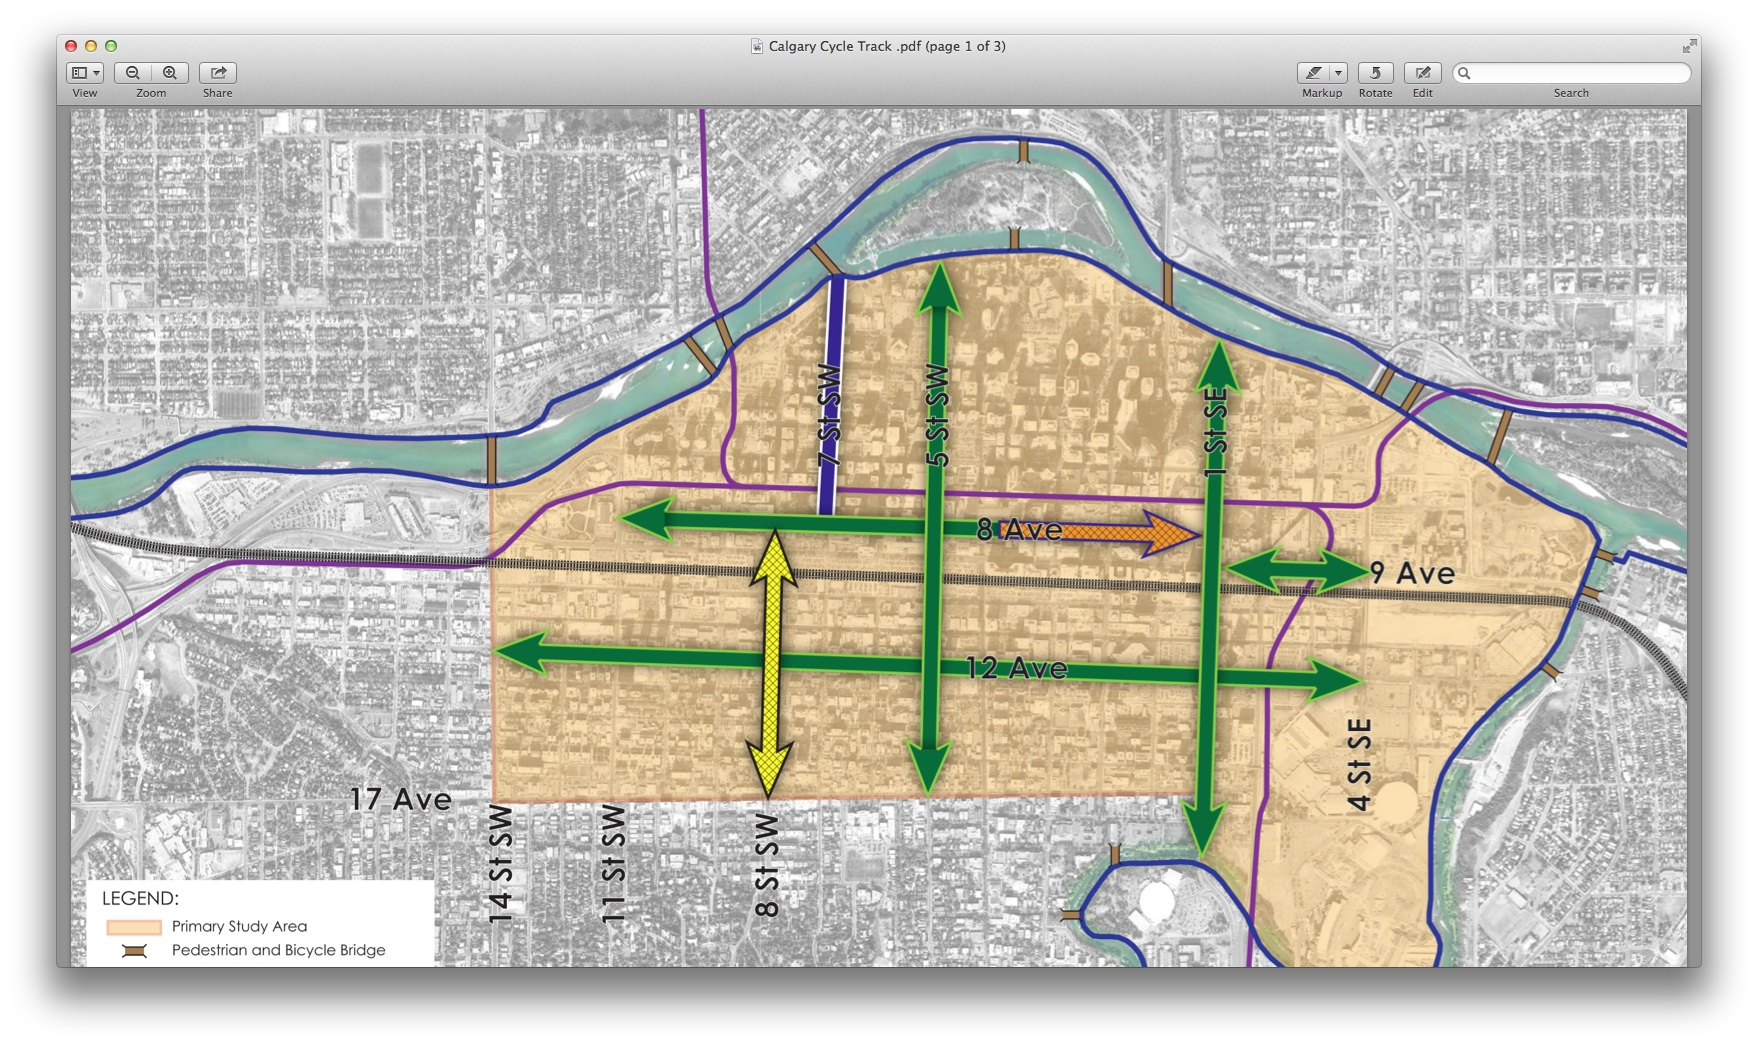 This is a diagram of the proposed cycling infrastructure improvements planned for the City Centre. The green lines are the proposed new cycle tracks or separate bike lanes. The yellow line is the 8th Street Master Plan Corridor Study which is more comprehensive than just bike lanes. The brown arrow is the proposed Stephen Avenue Bicycle Study and the blue is the new 7th Avenue Cycle Track that exists now.